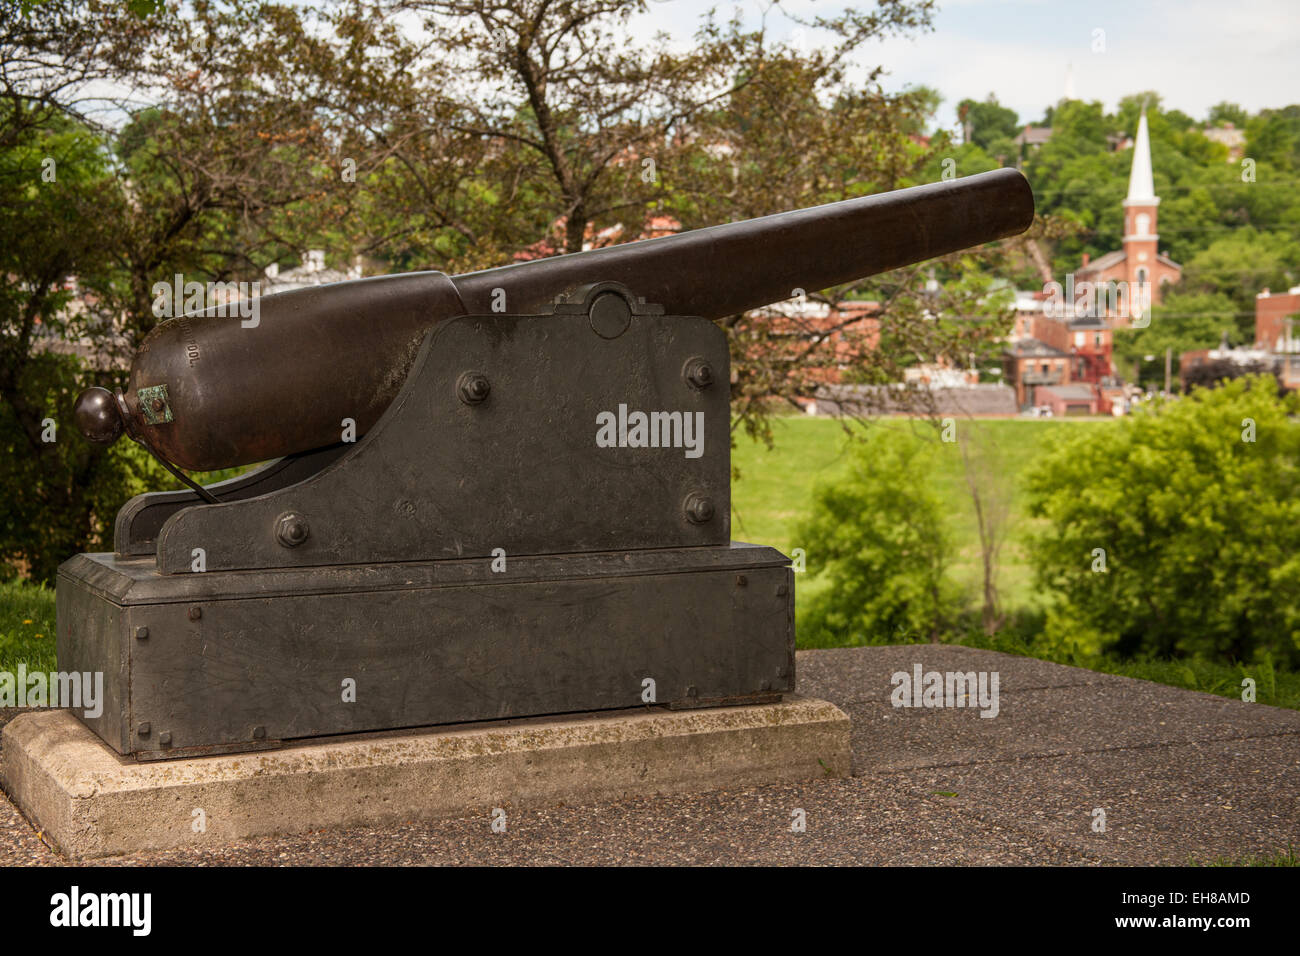 This naval cannon was captured July 3, 1898 from the Spanish Cruiser Vizcaya at the famous Battle of the Spanish - Stock Image